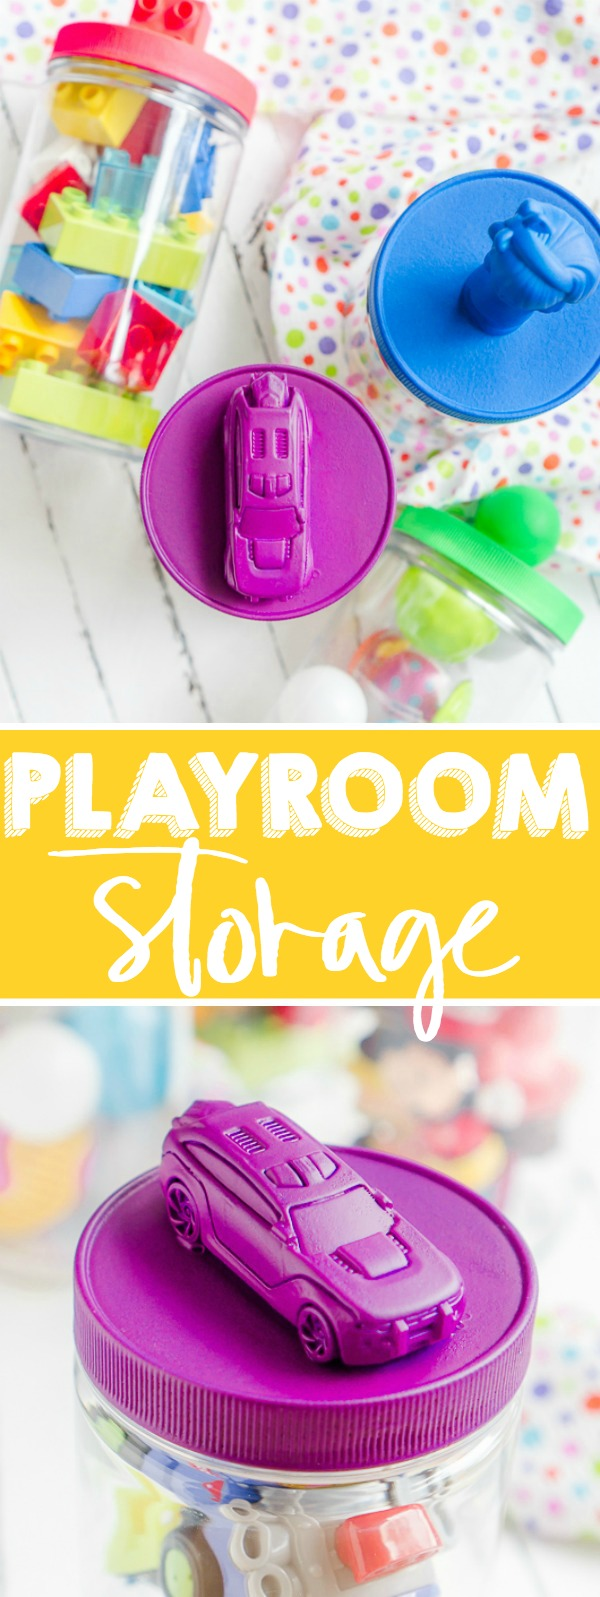 All parents know that the playroom can easily become a huge mess so I've created some colorful DIY Playroom Storage Containers! Create lids with easily identifiable toy labels in bright colors thanks to Plasti Dip. | The Love Nerds